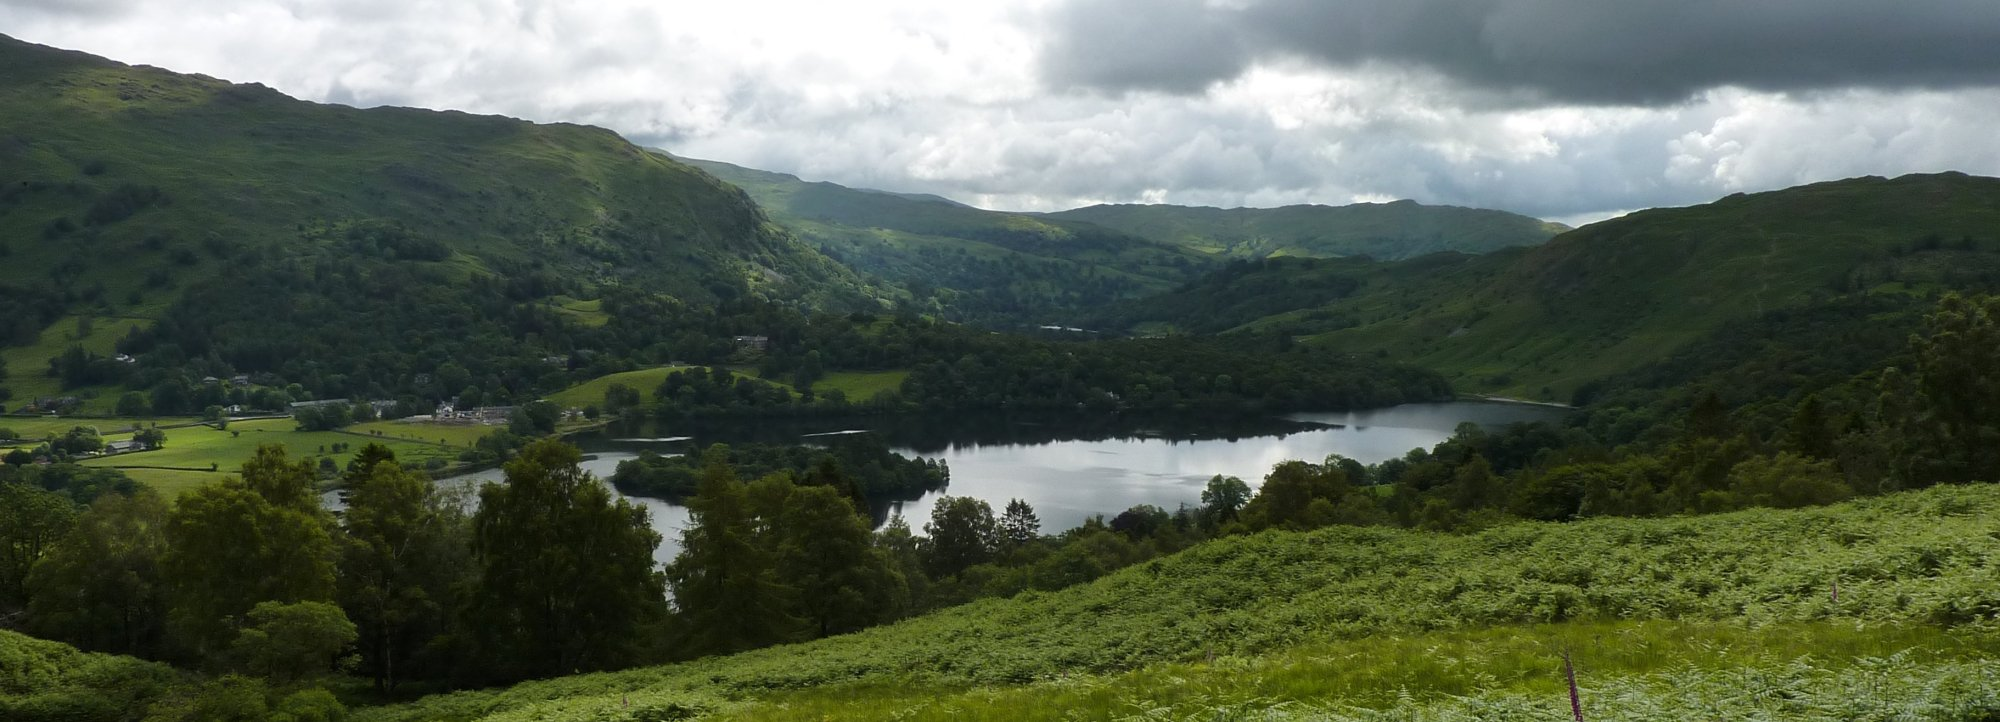 Looking back towards Grasmere